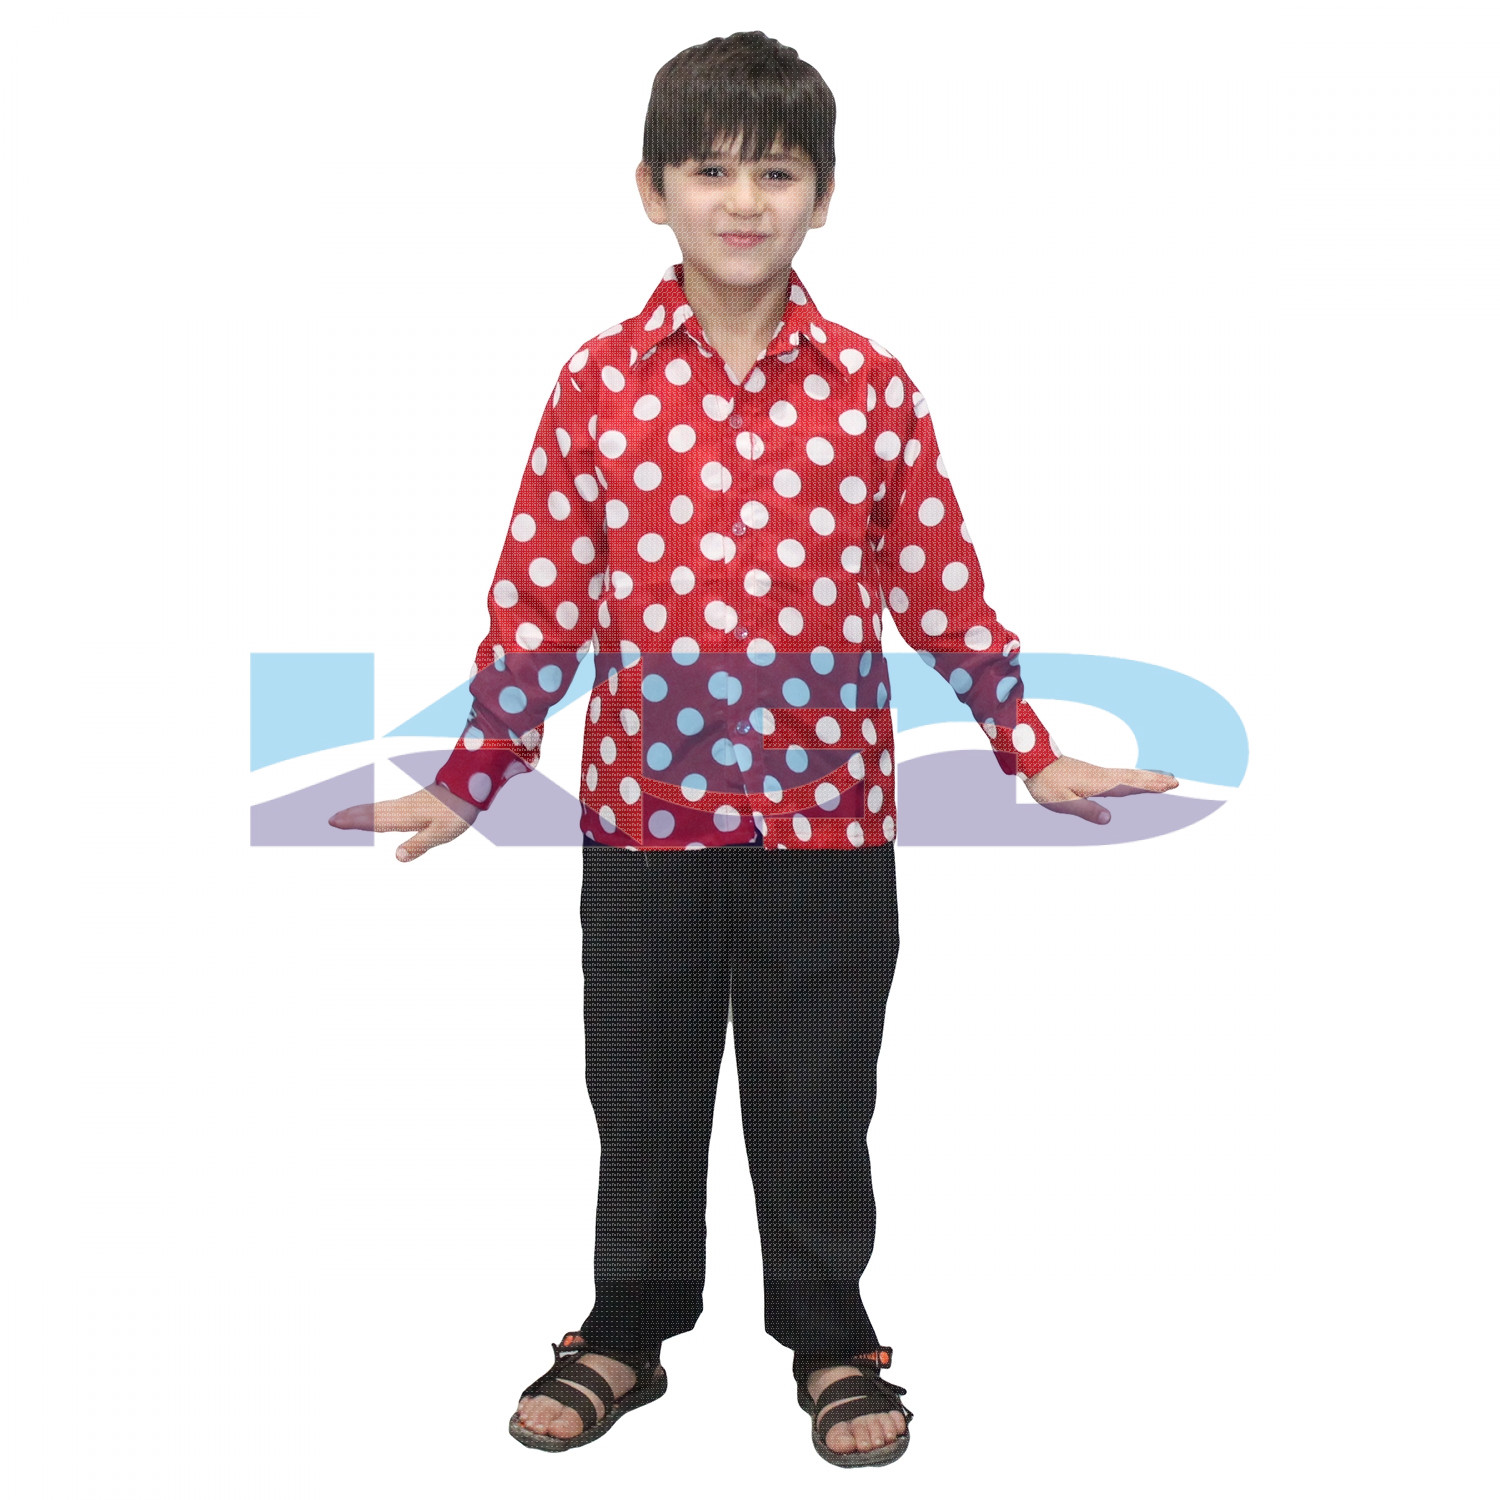 Polka Dot Shirt fancy dress for kids,Western Costume for Annual function/Theme Party/Competition/Stage Shows/Birthday Party Dress